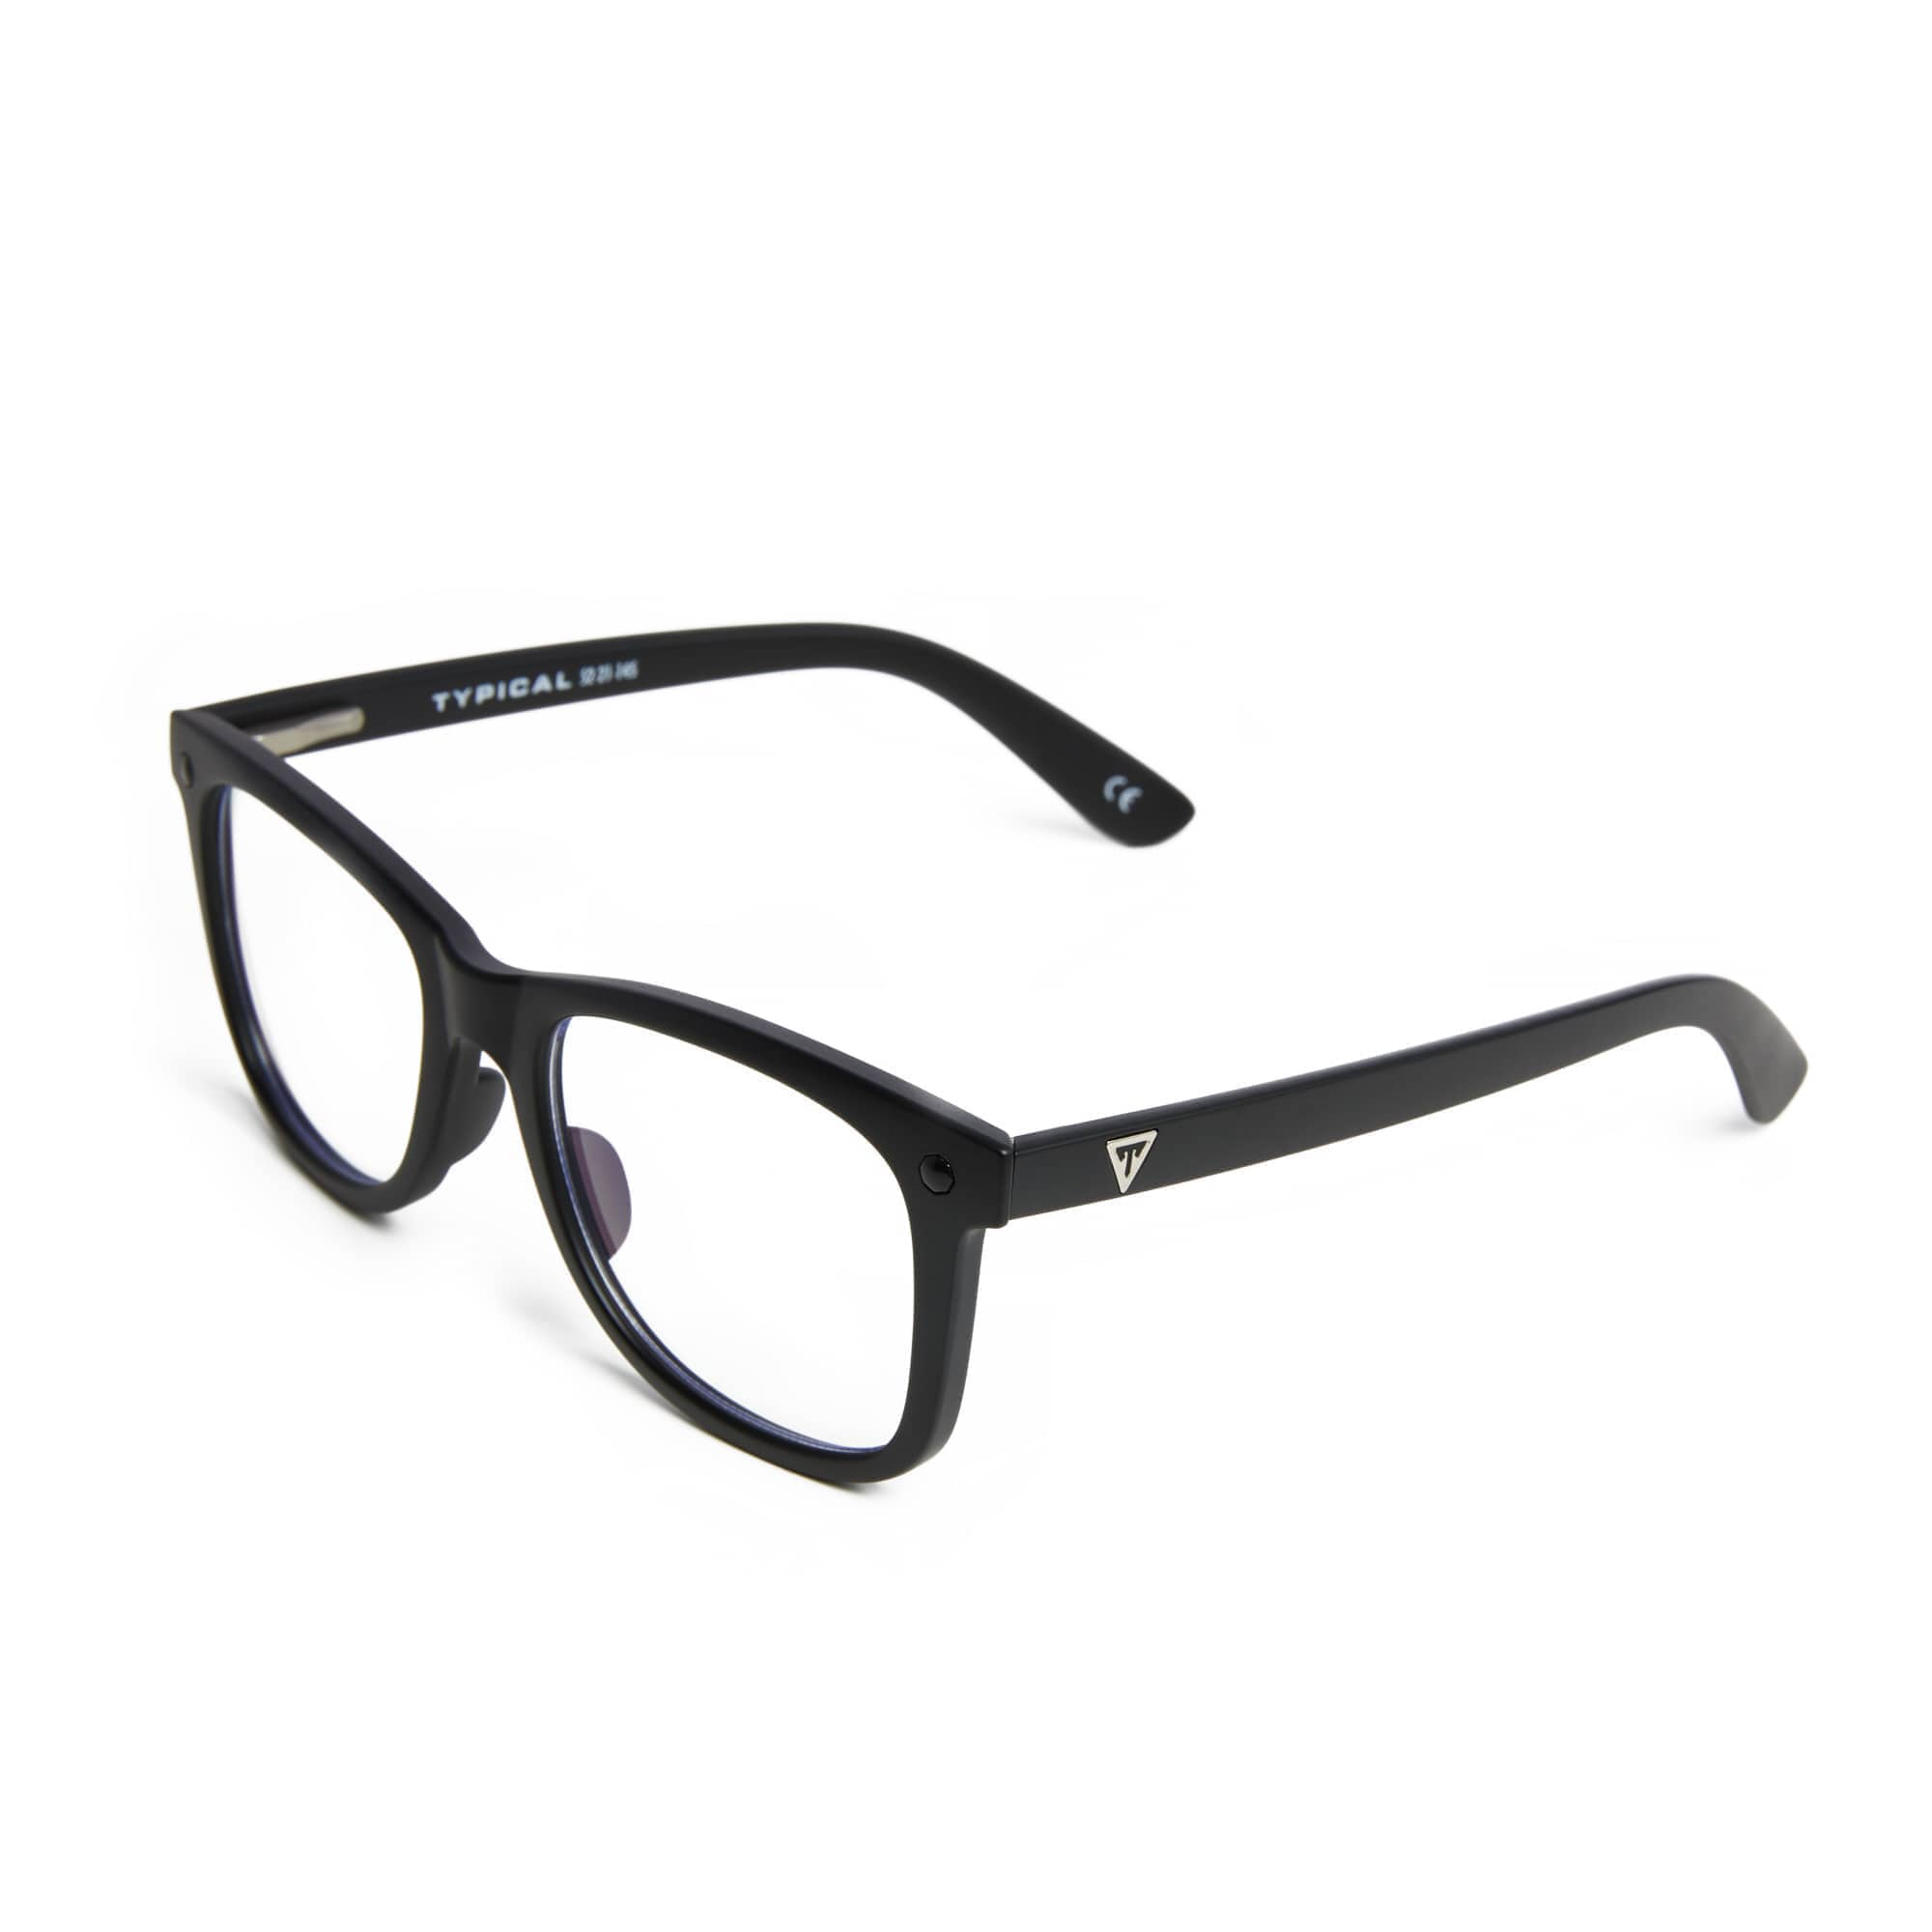 Typical x Glassy Gaming Eyewear Glasses